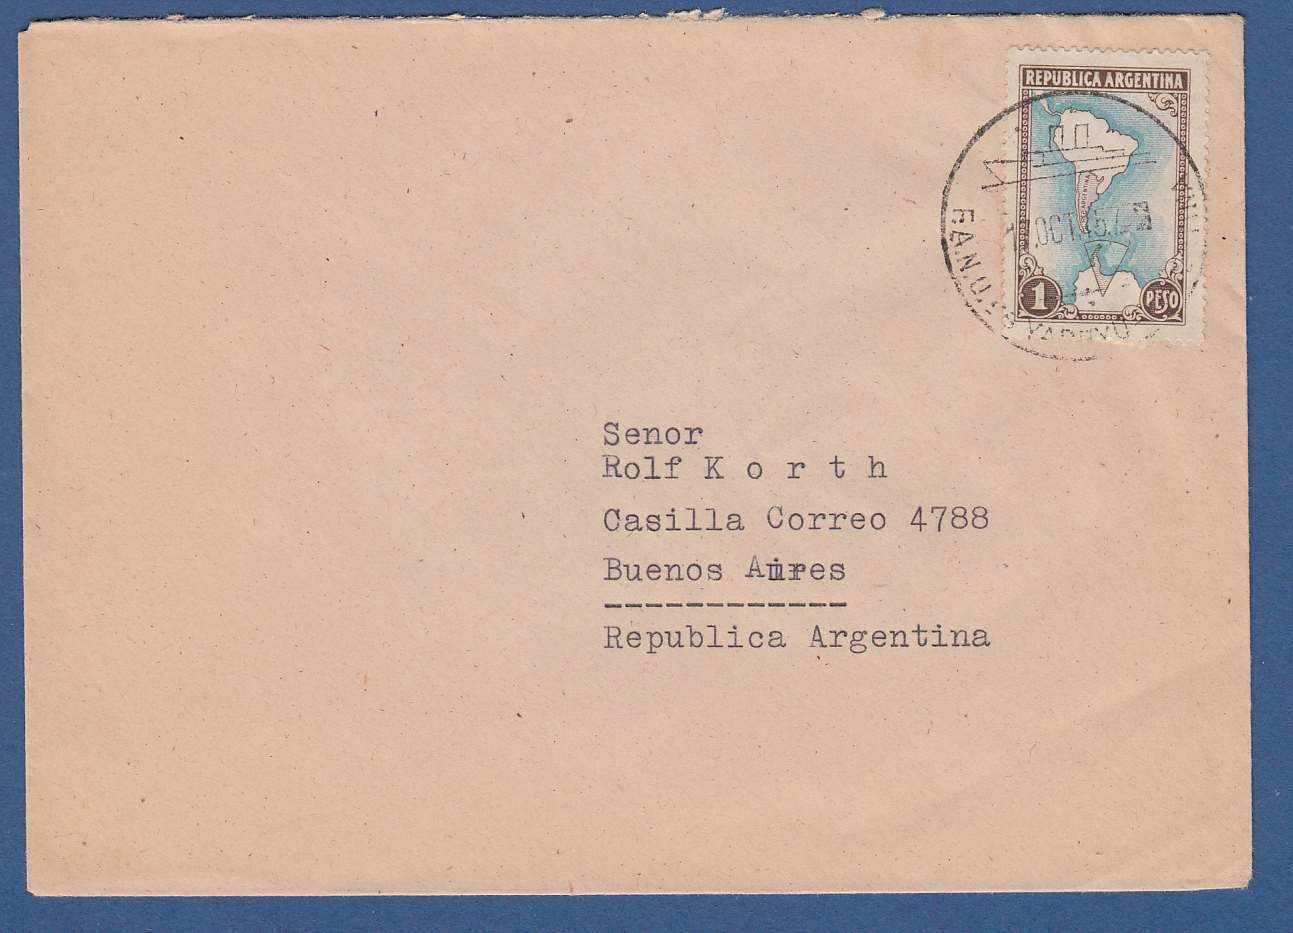 ARGENTINA cover 1957 with ship cancel